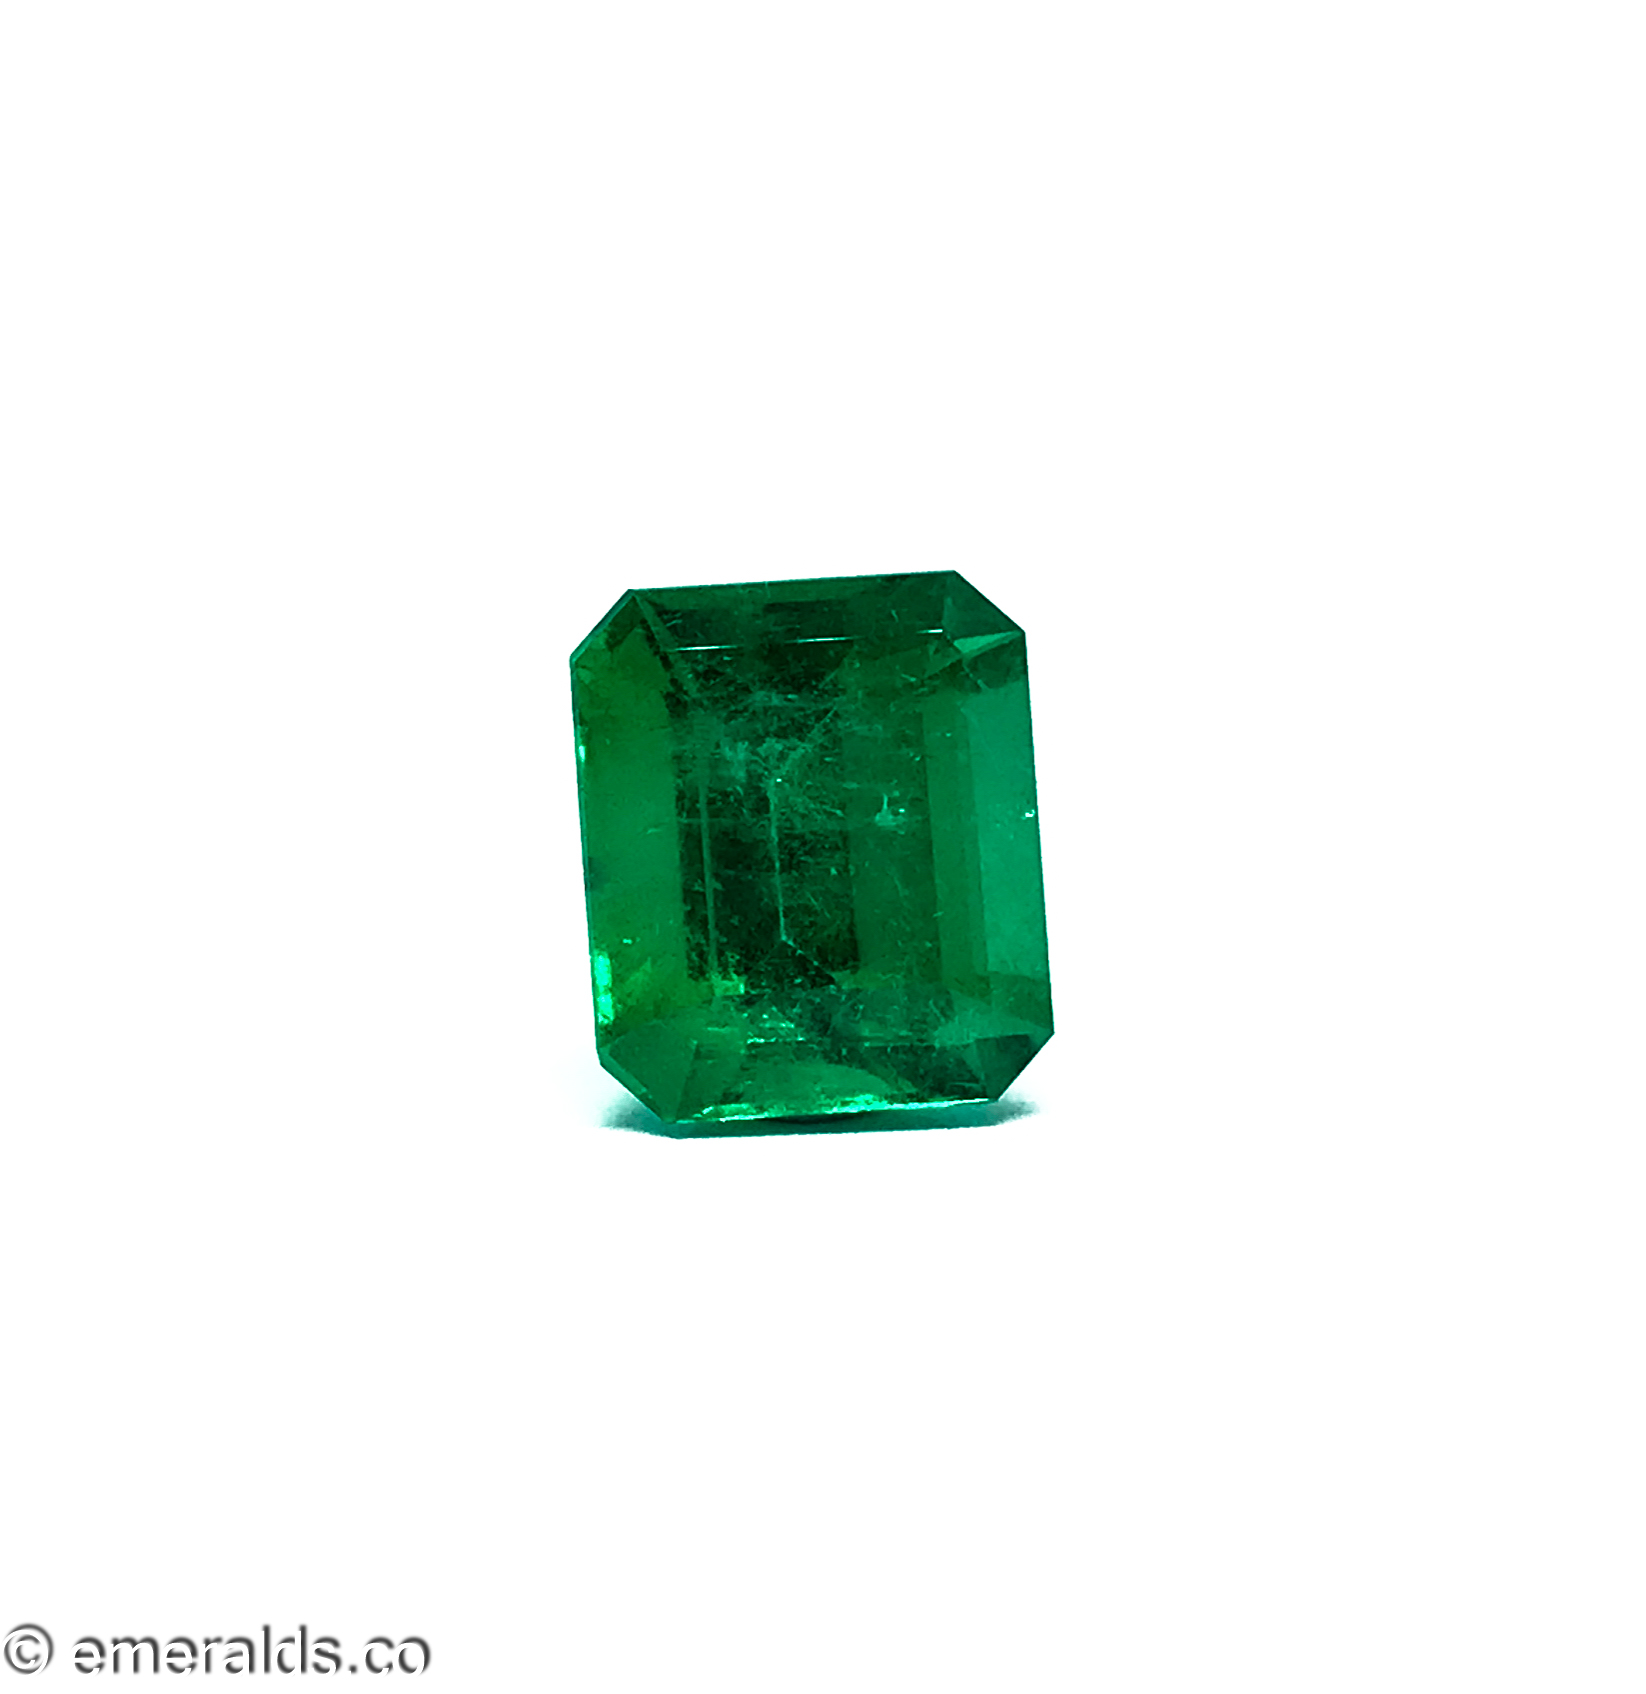 7.53 Fine Colombian Emerald Cut Minor Grs